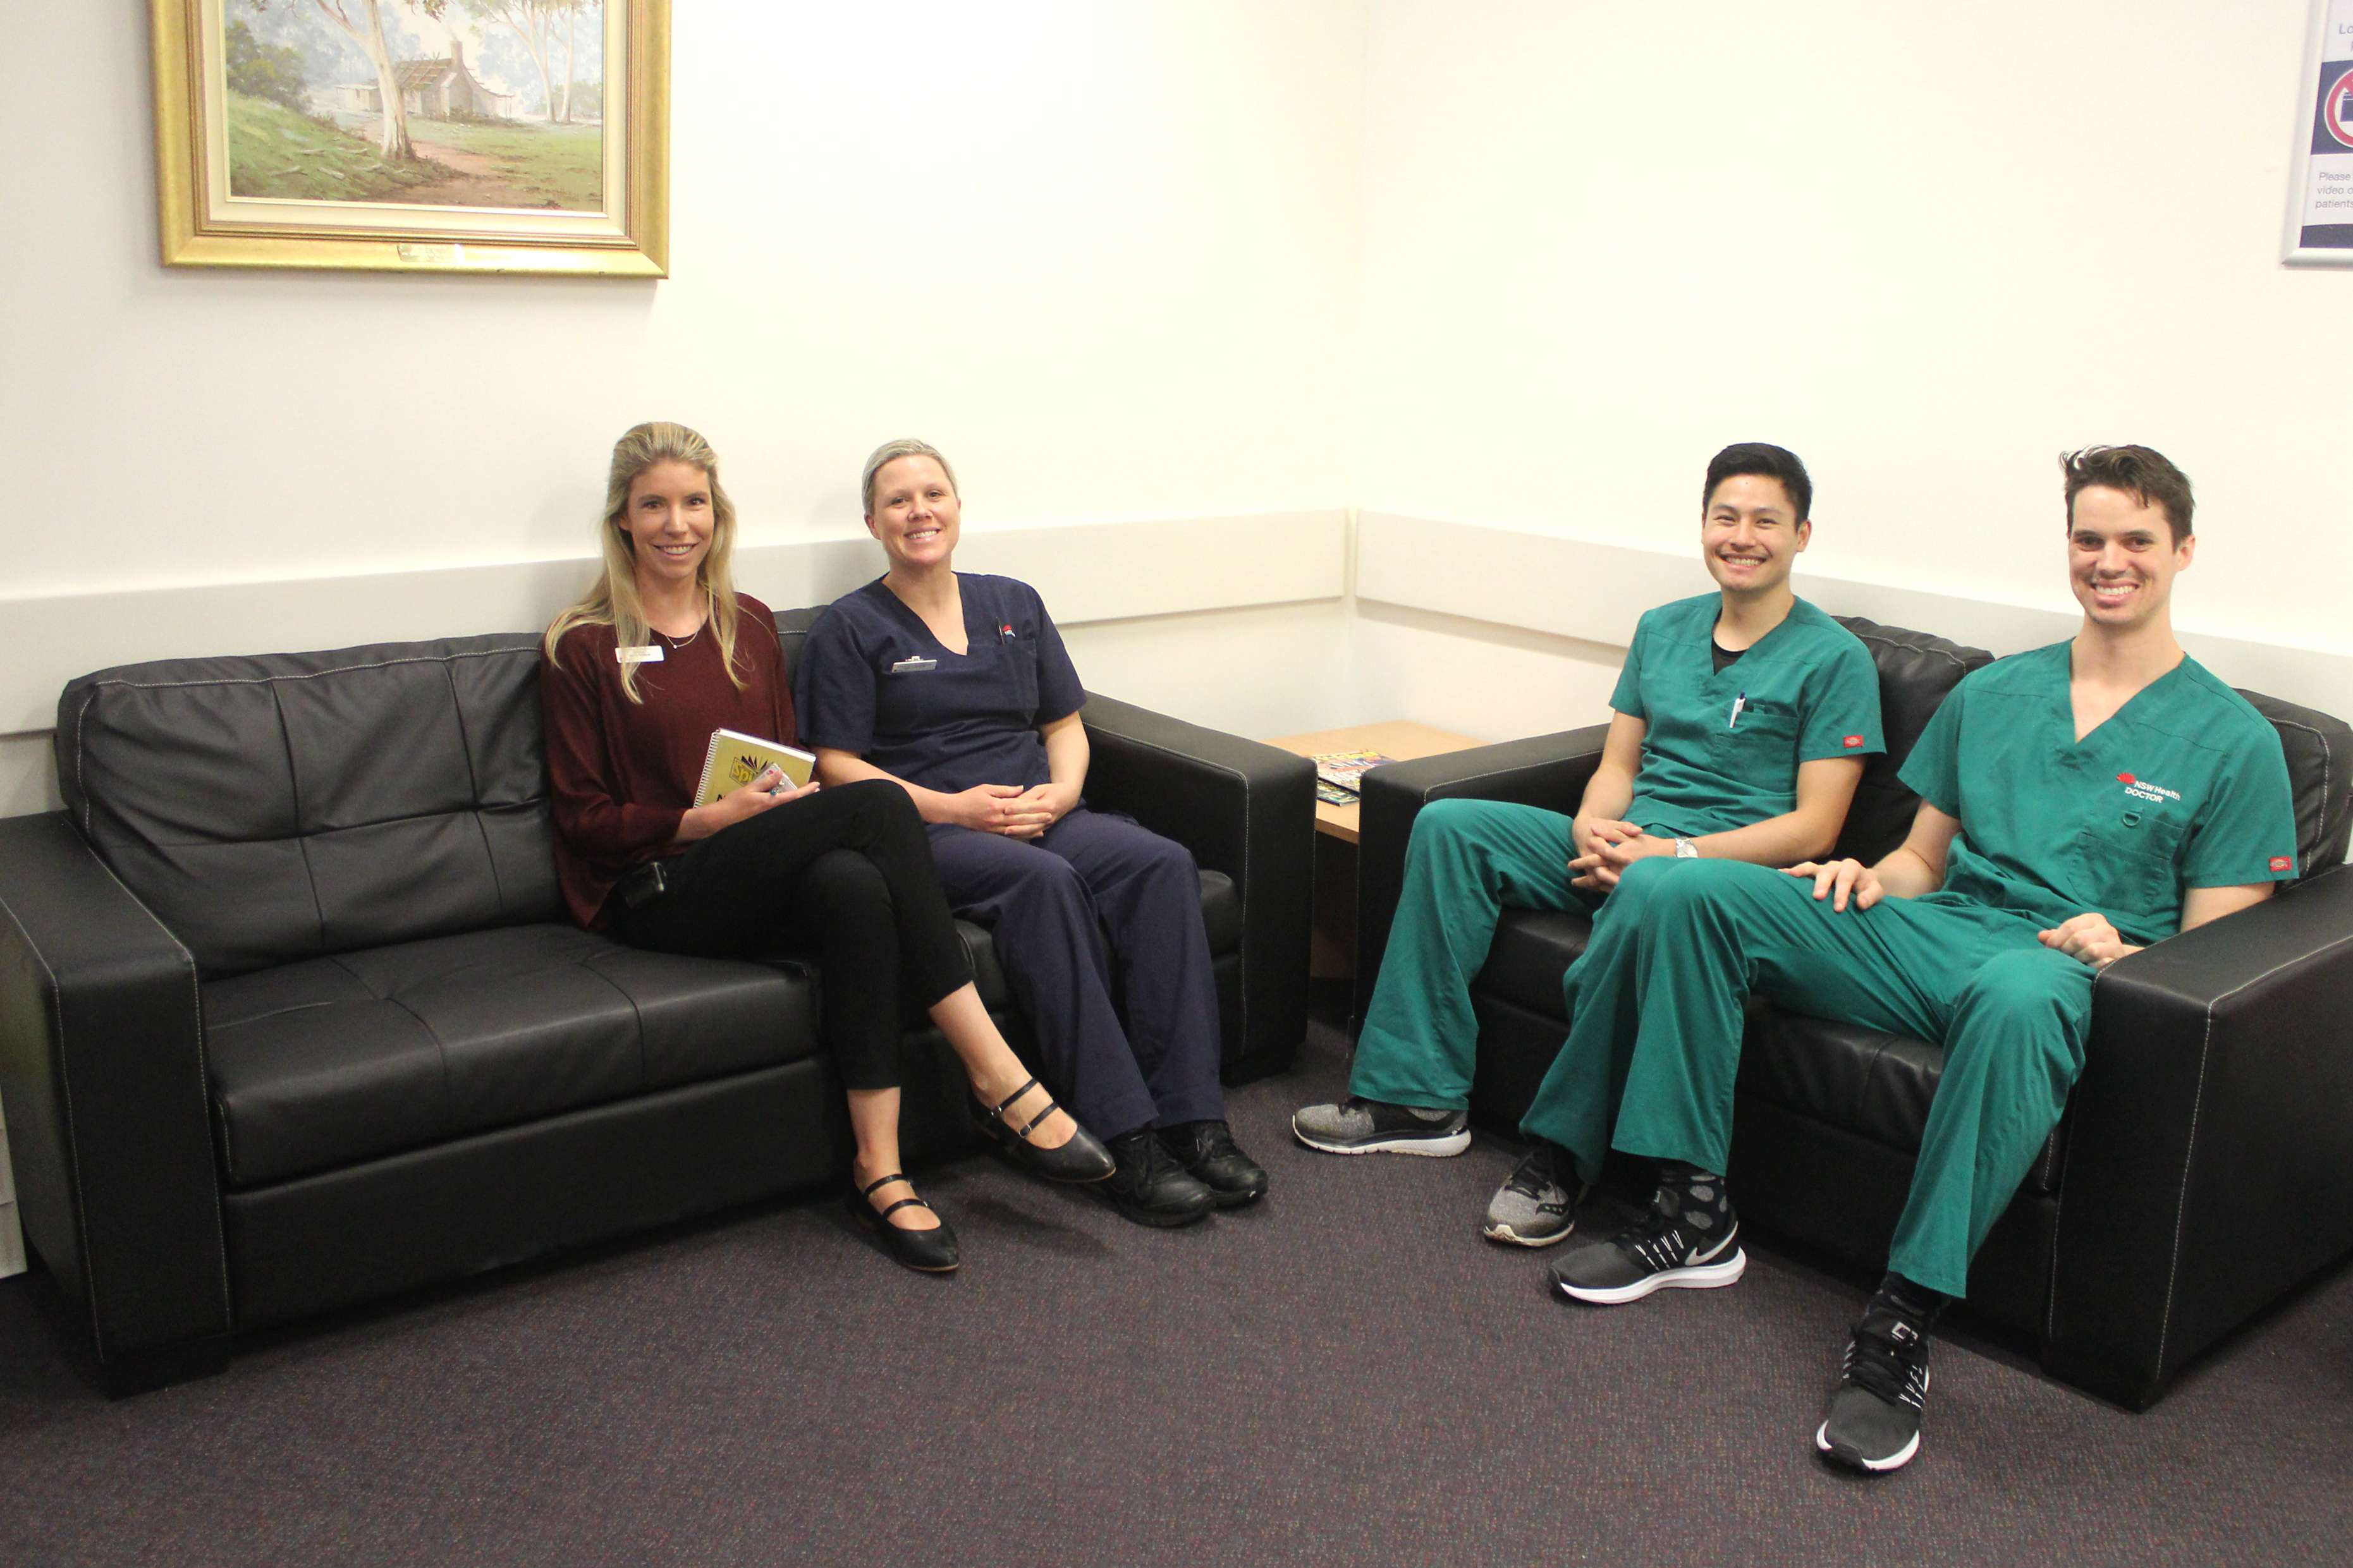 Nurses from the Intensive Care Unit sitting on the couches smiling